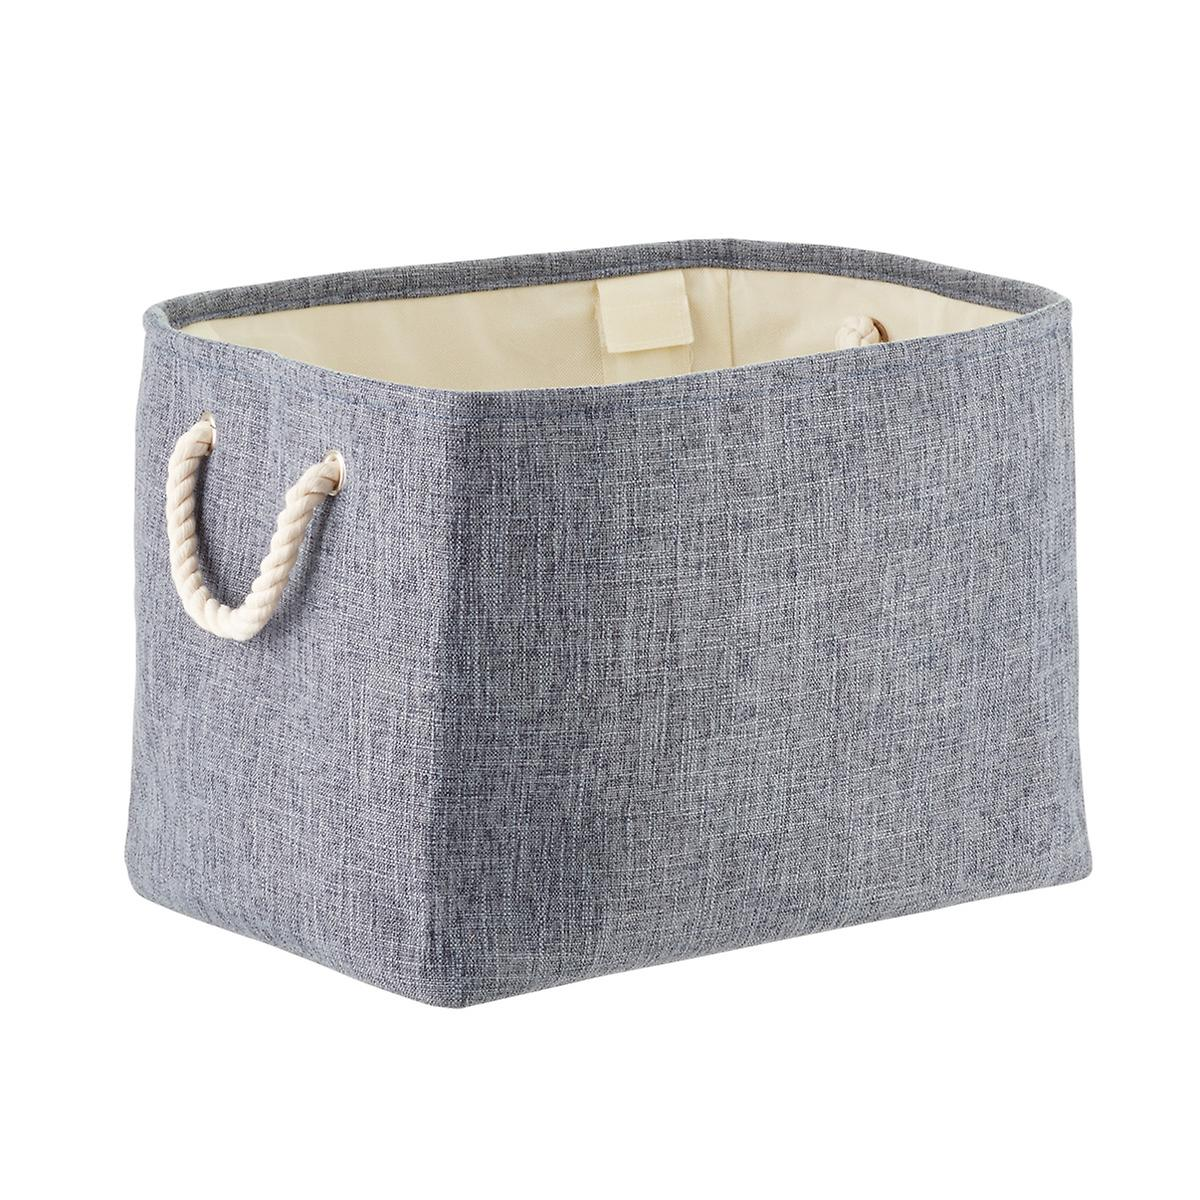 Navy Fabric Storage Bin with Rope Handles